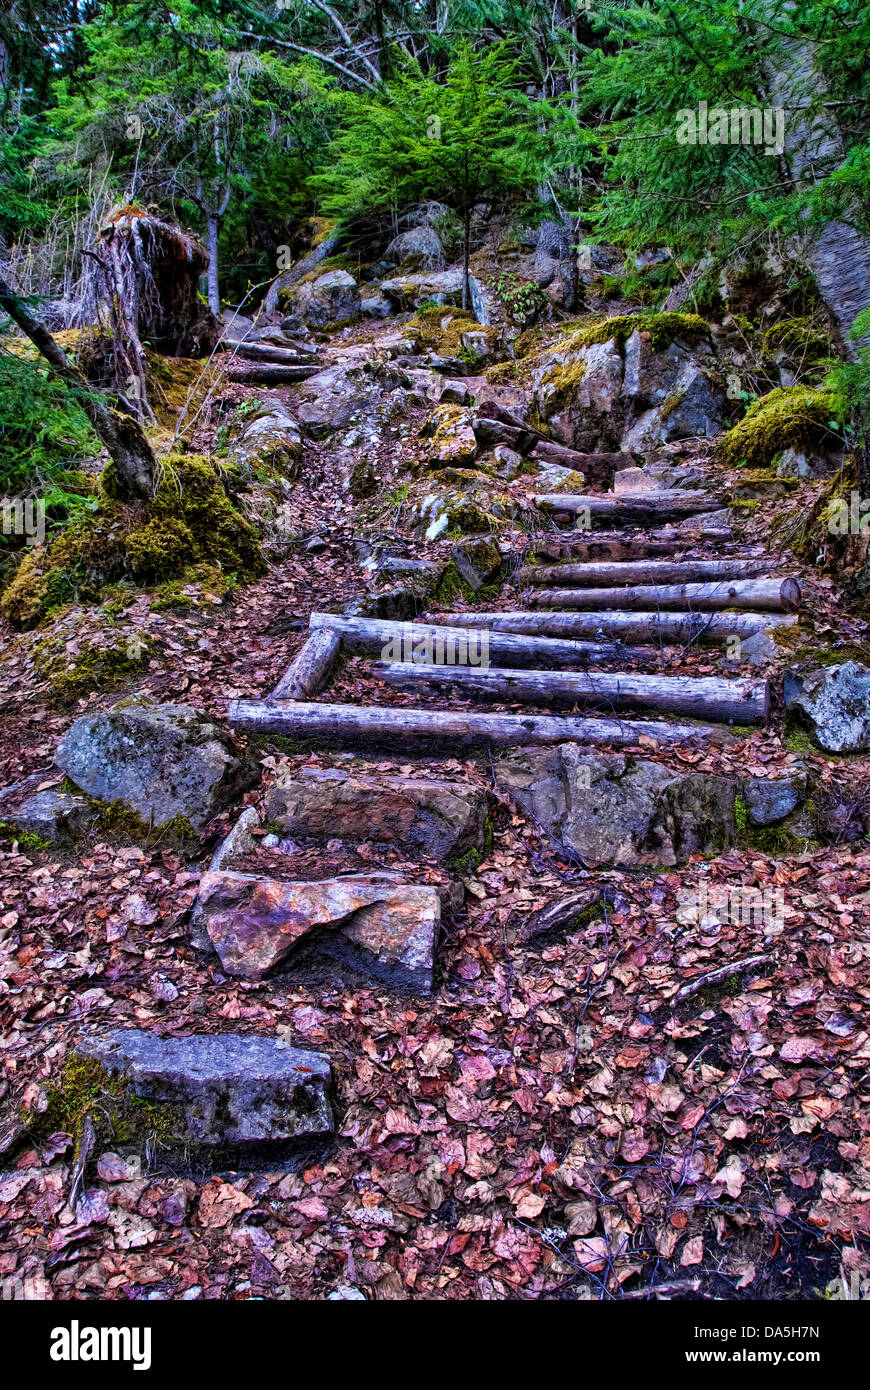 chilkoot trail, national, historic, site, skagway, Alaska, USA, United States, America, - Stock Image